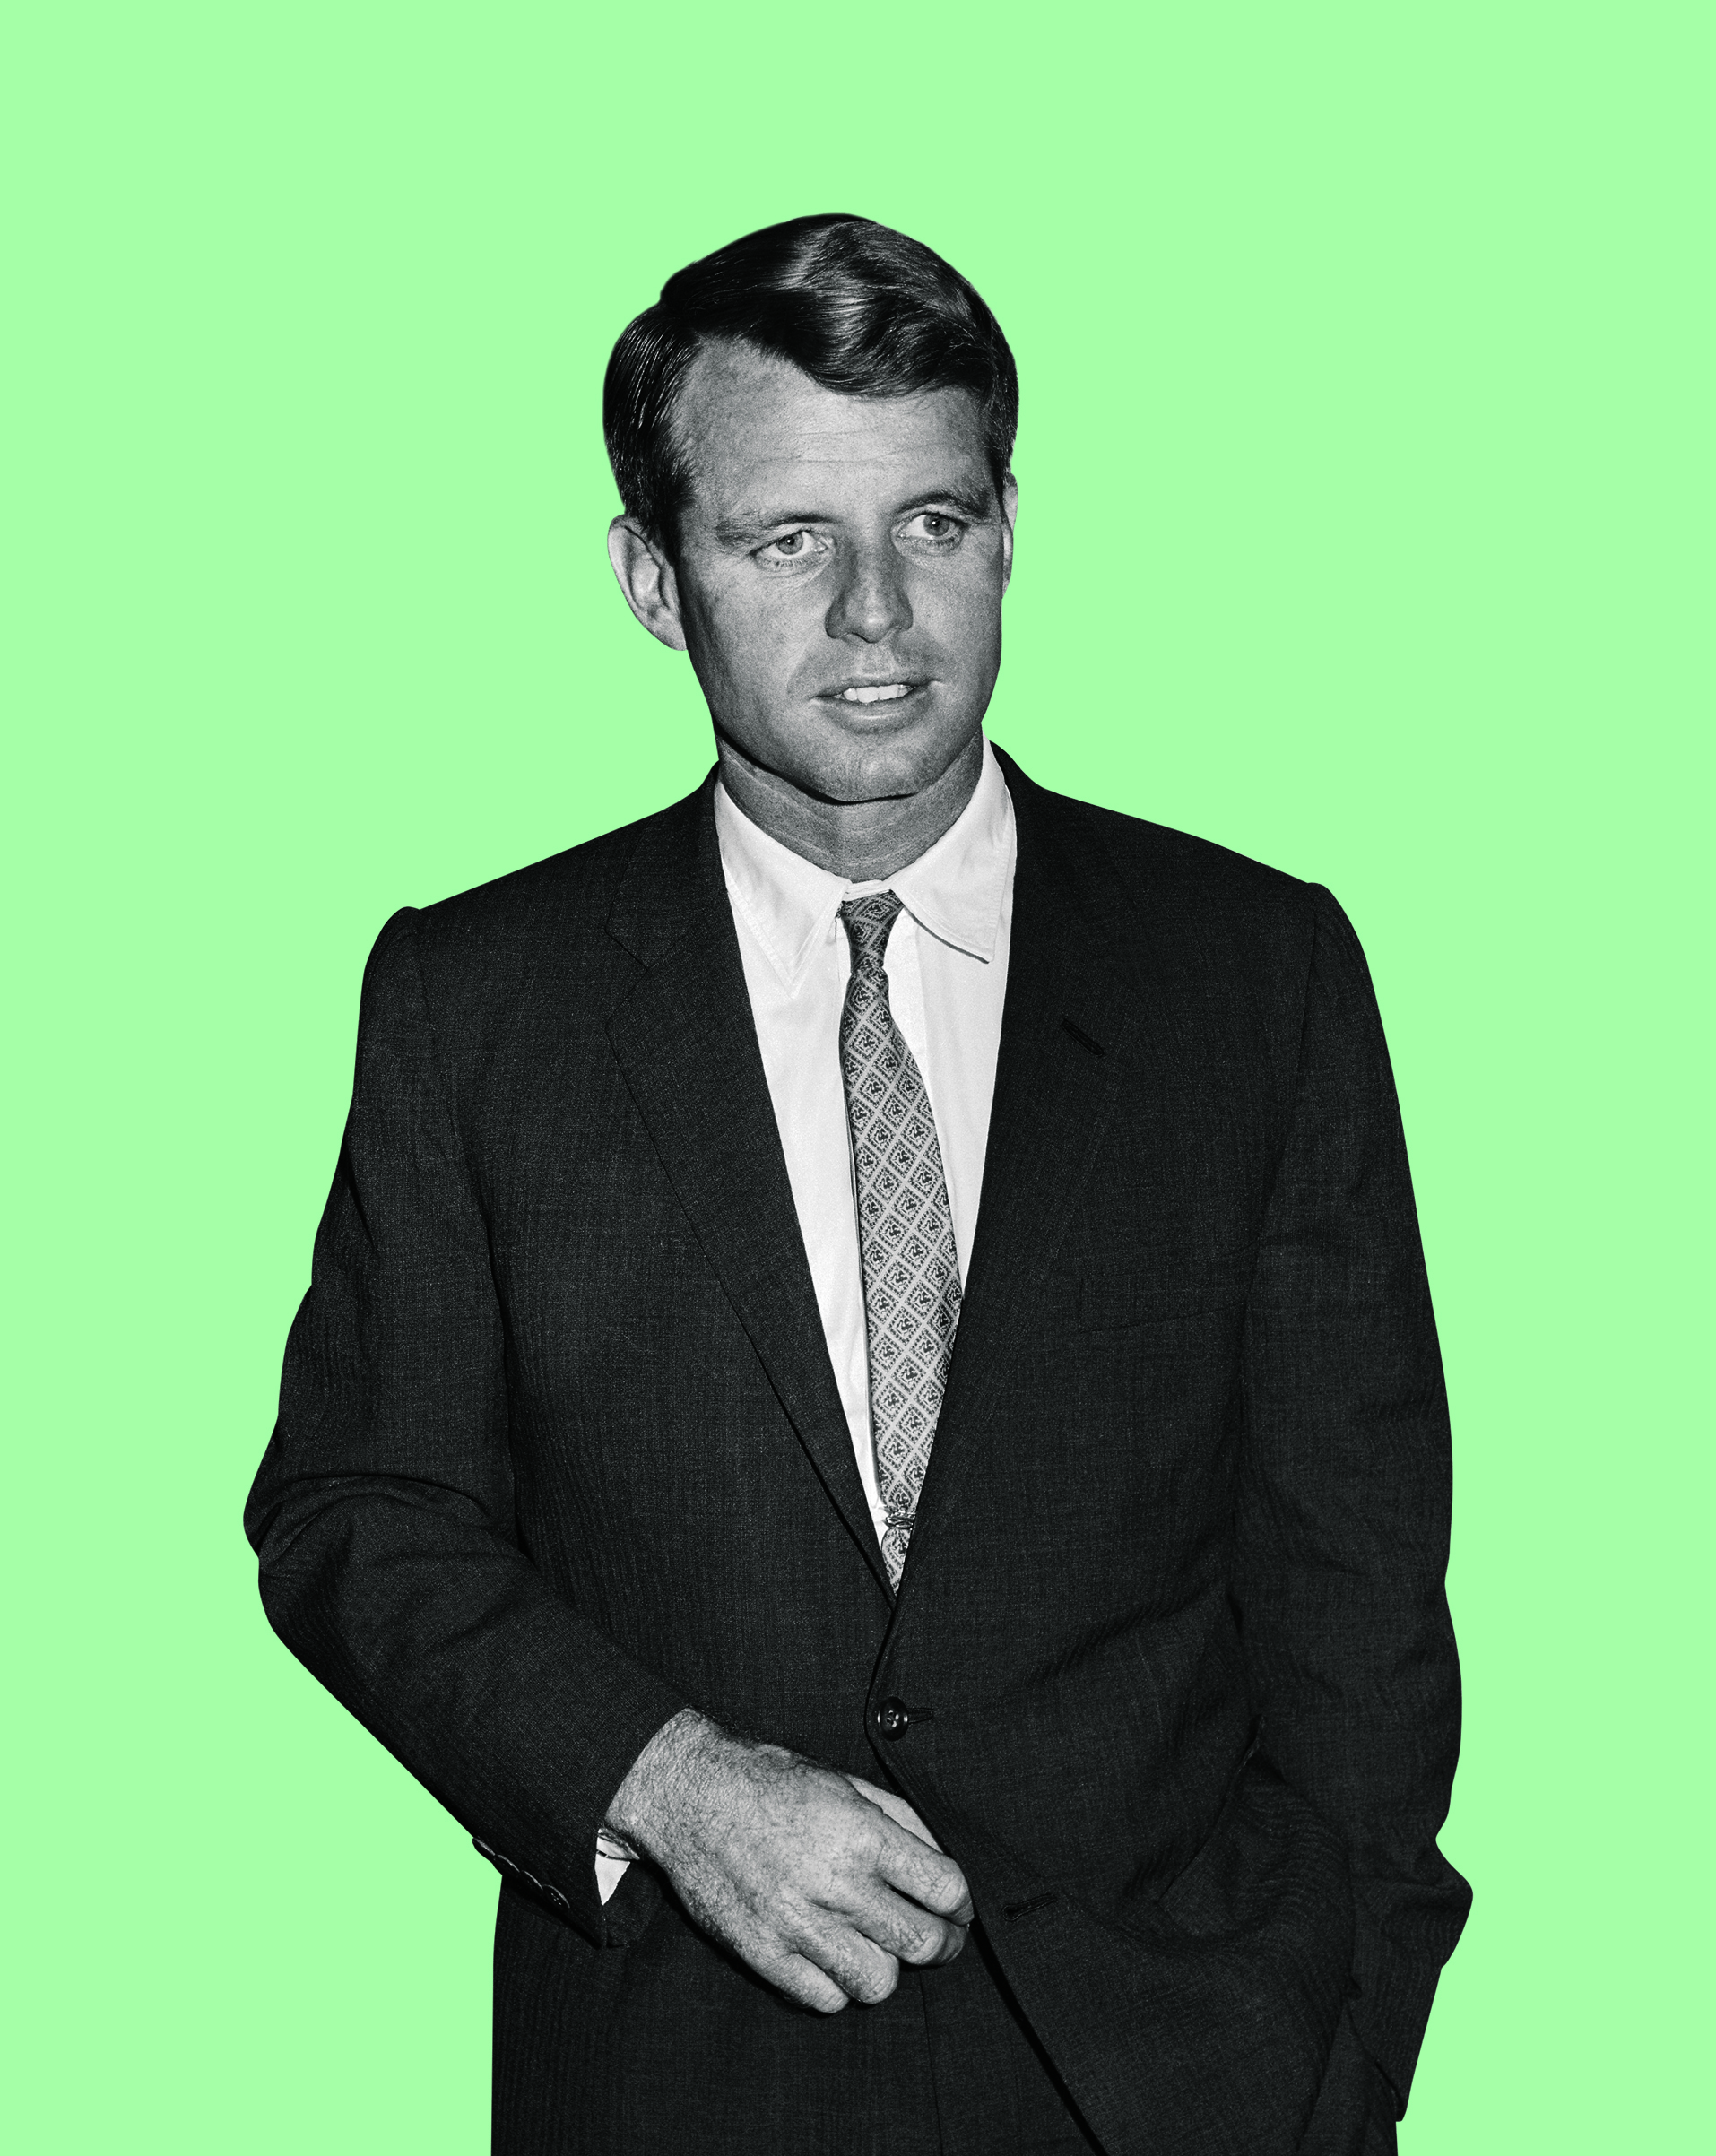 Robert Kennedy, brother of John F. Kennedy, attorney general and U.S. senator.